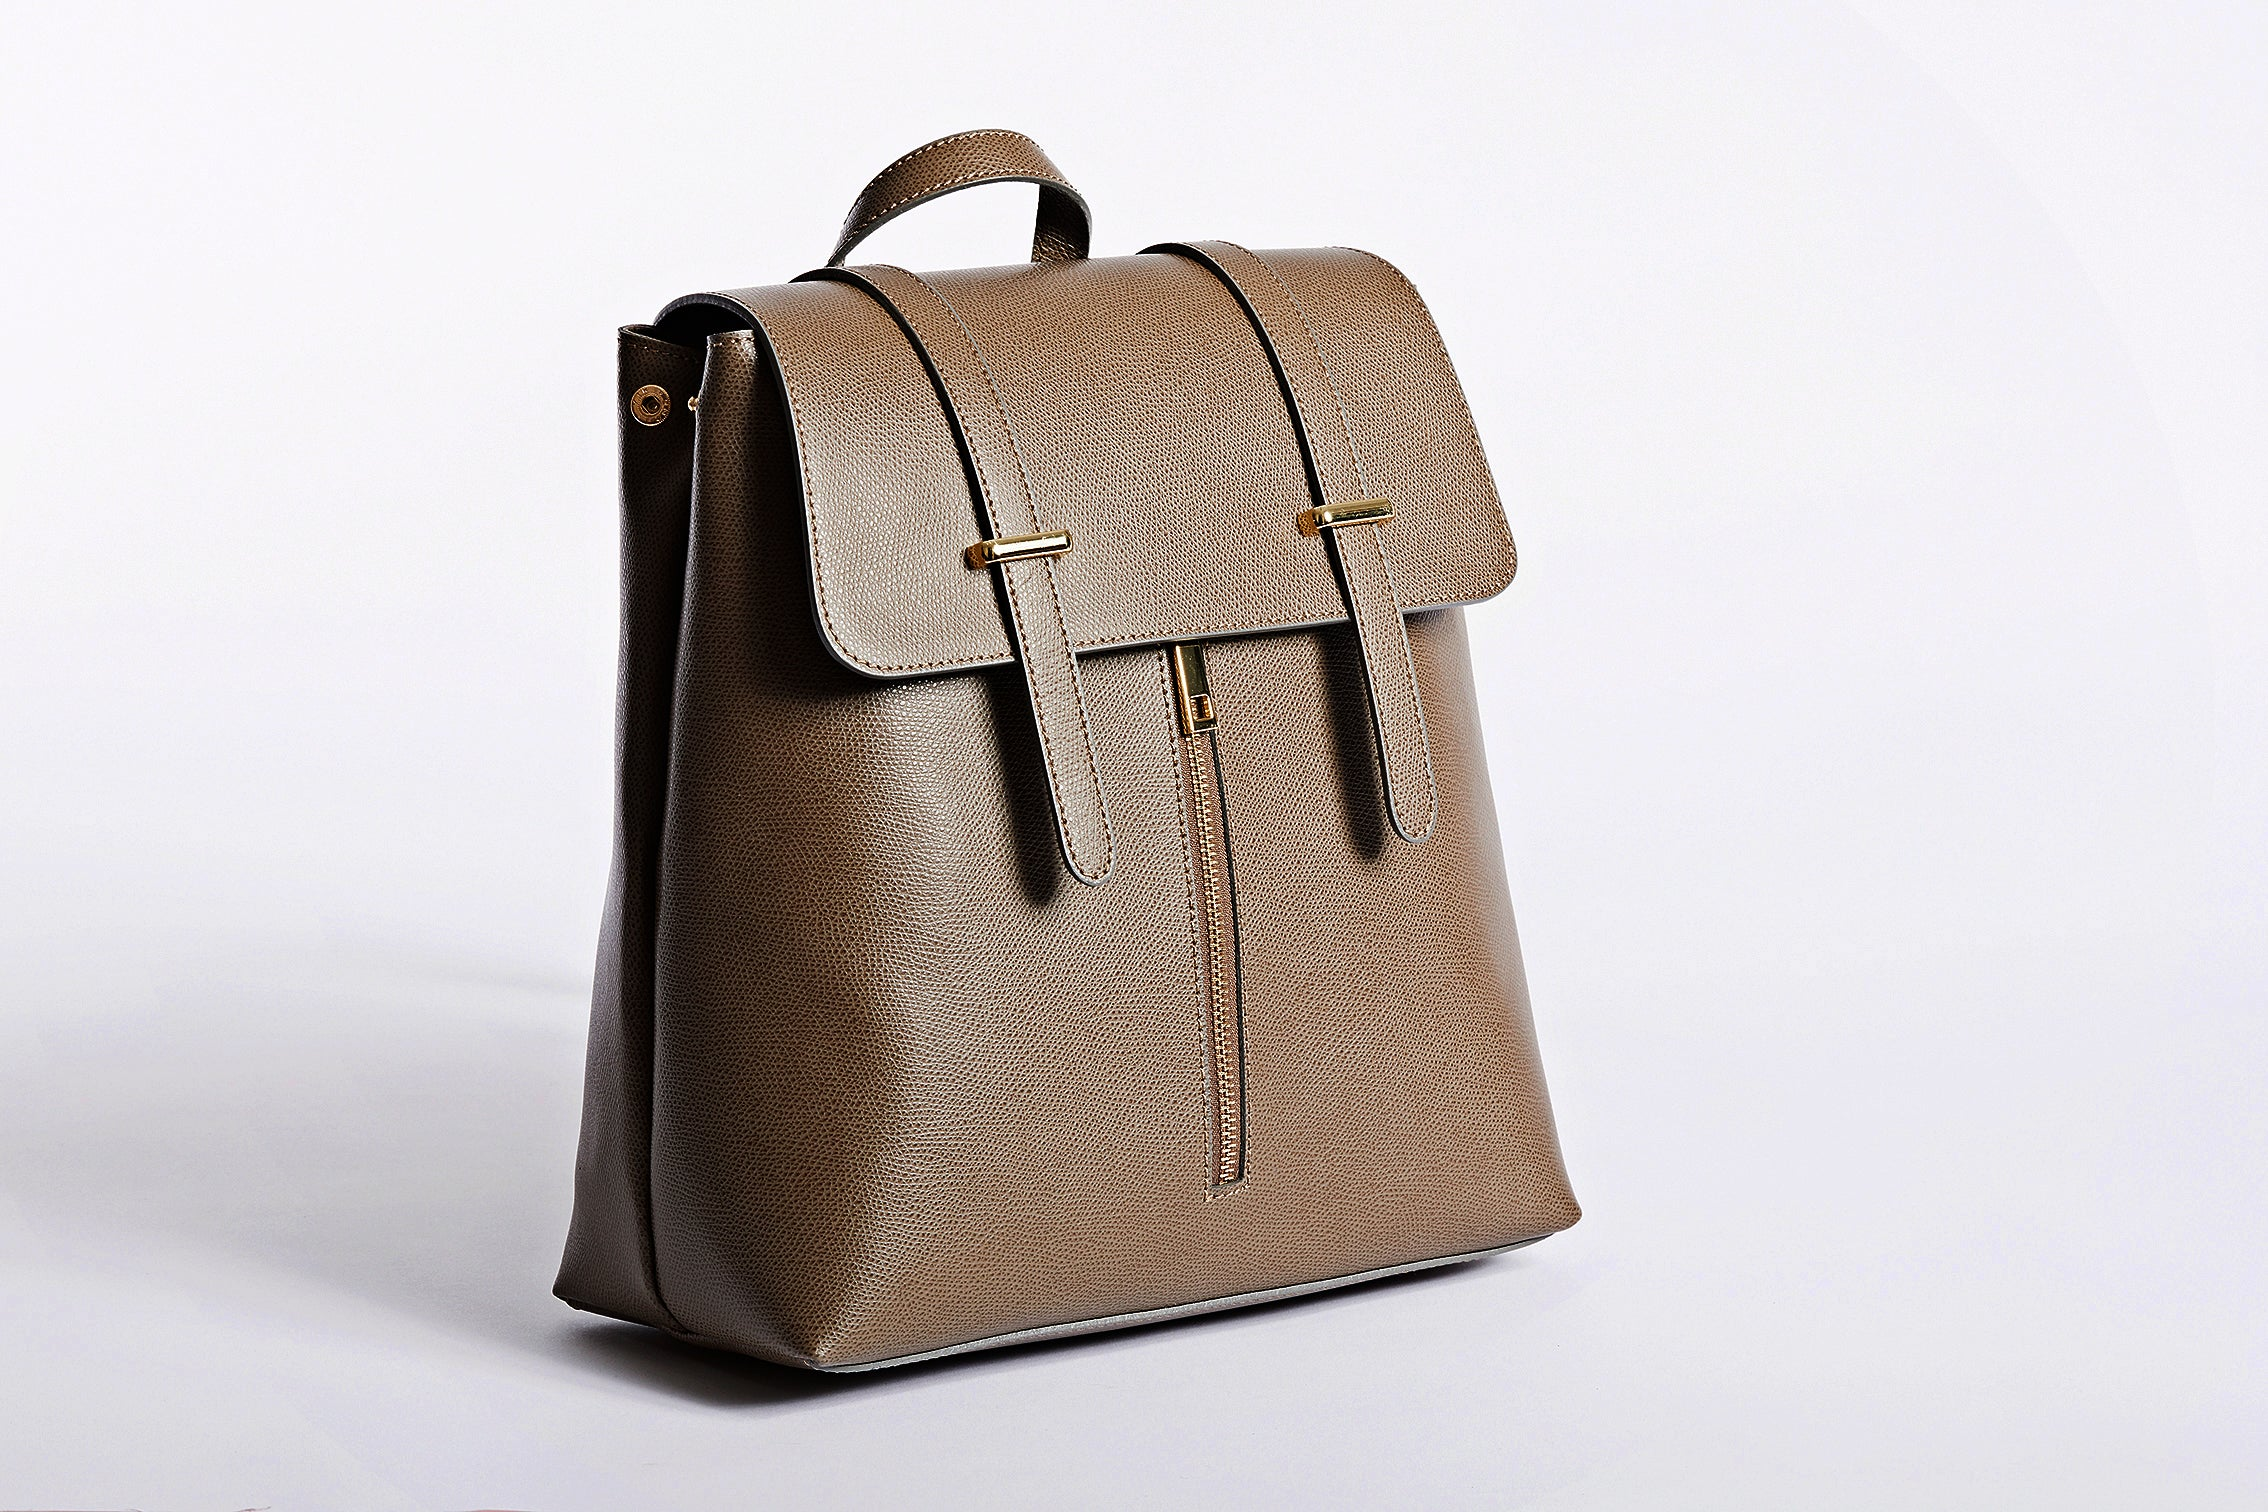 Tape grey classic, smart design with plenty of room in this Backpack